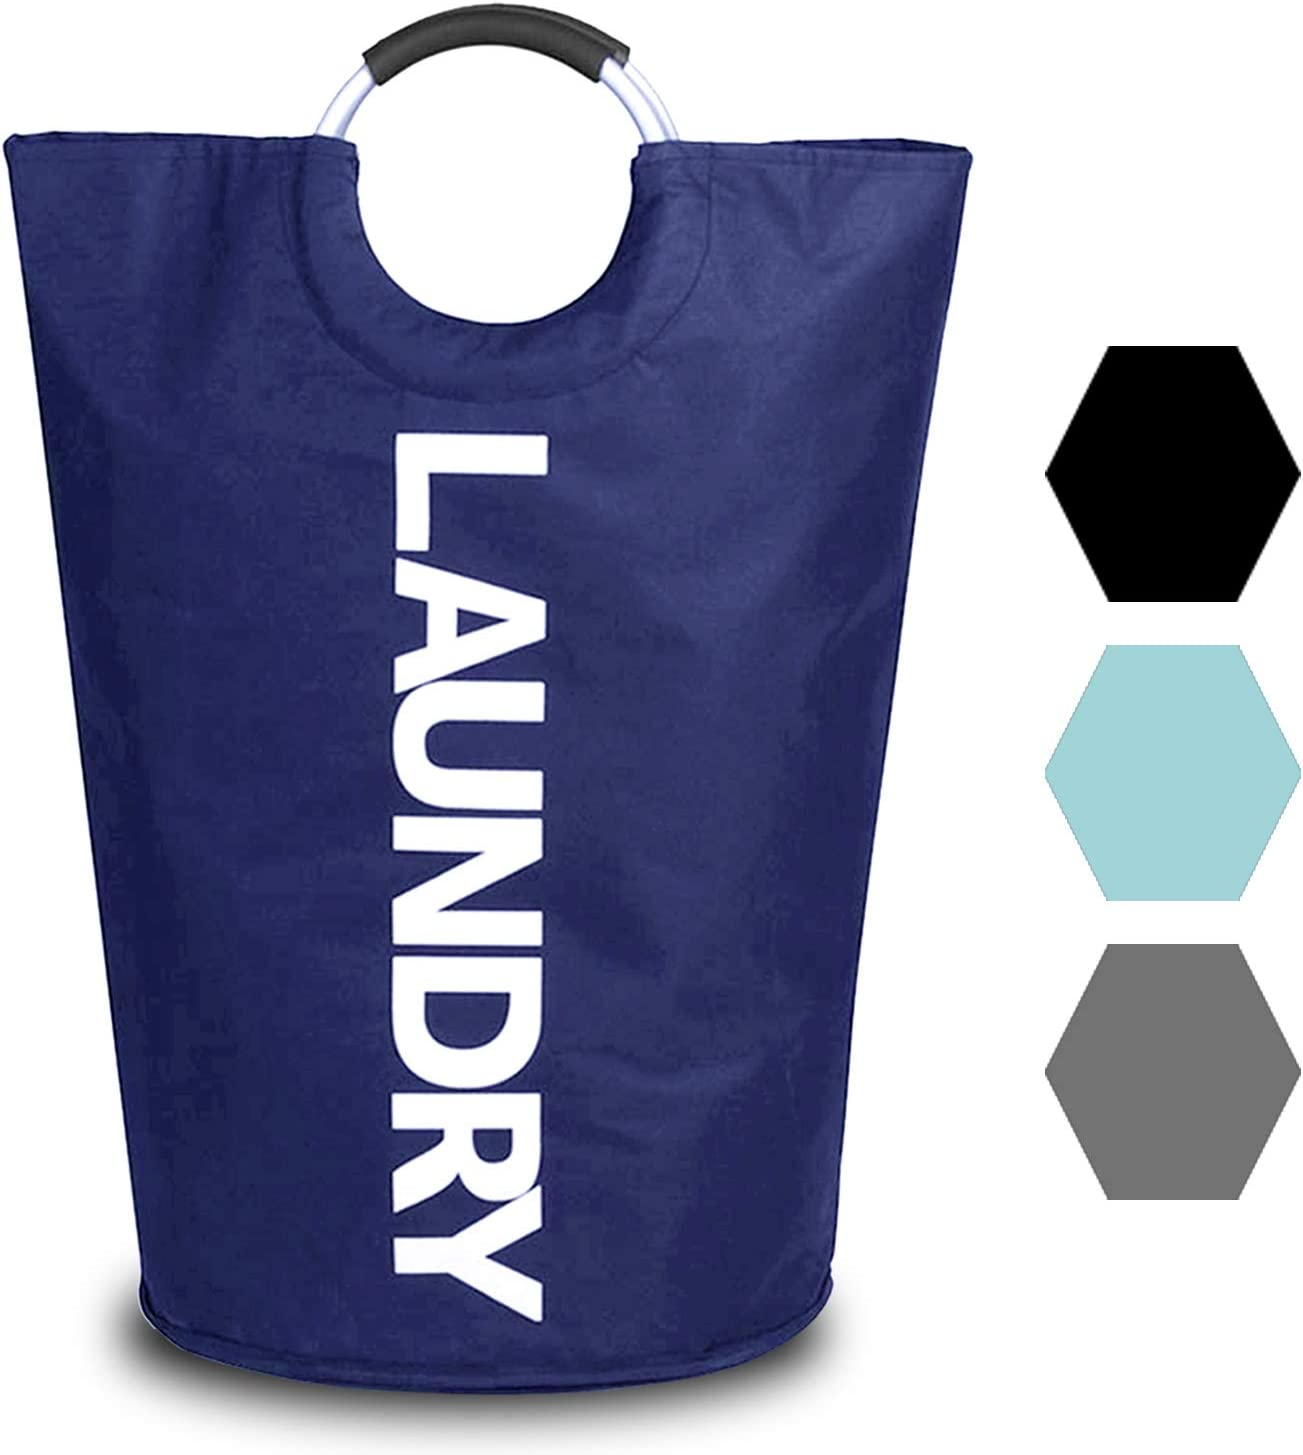 Durable Handles Collapsible Fabric Laundry Bag, Waterproof Portable